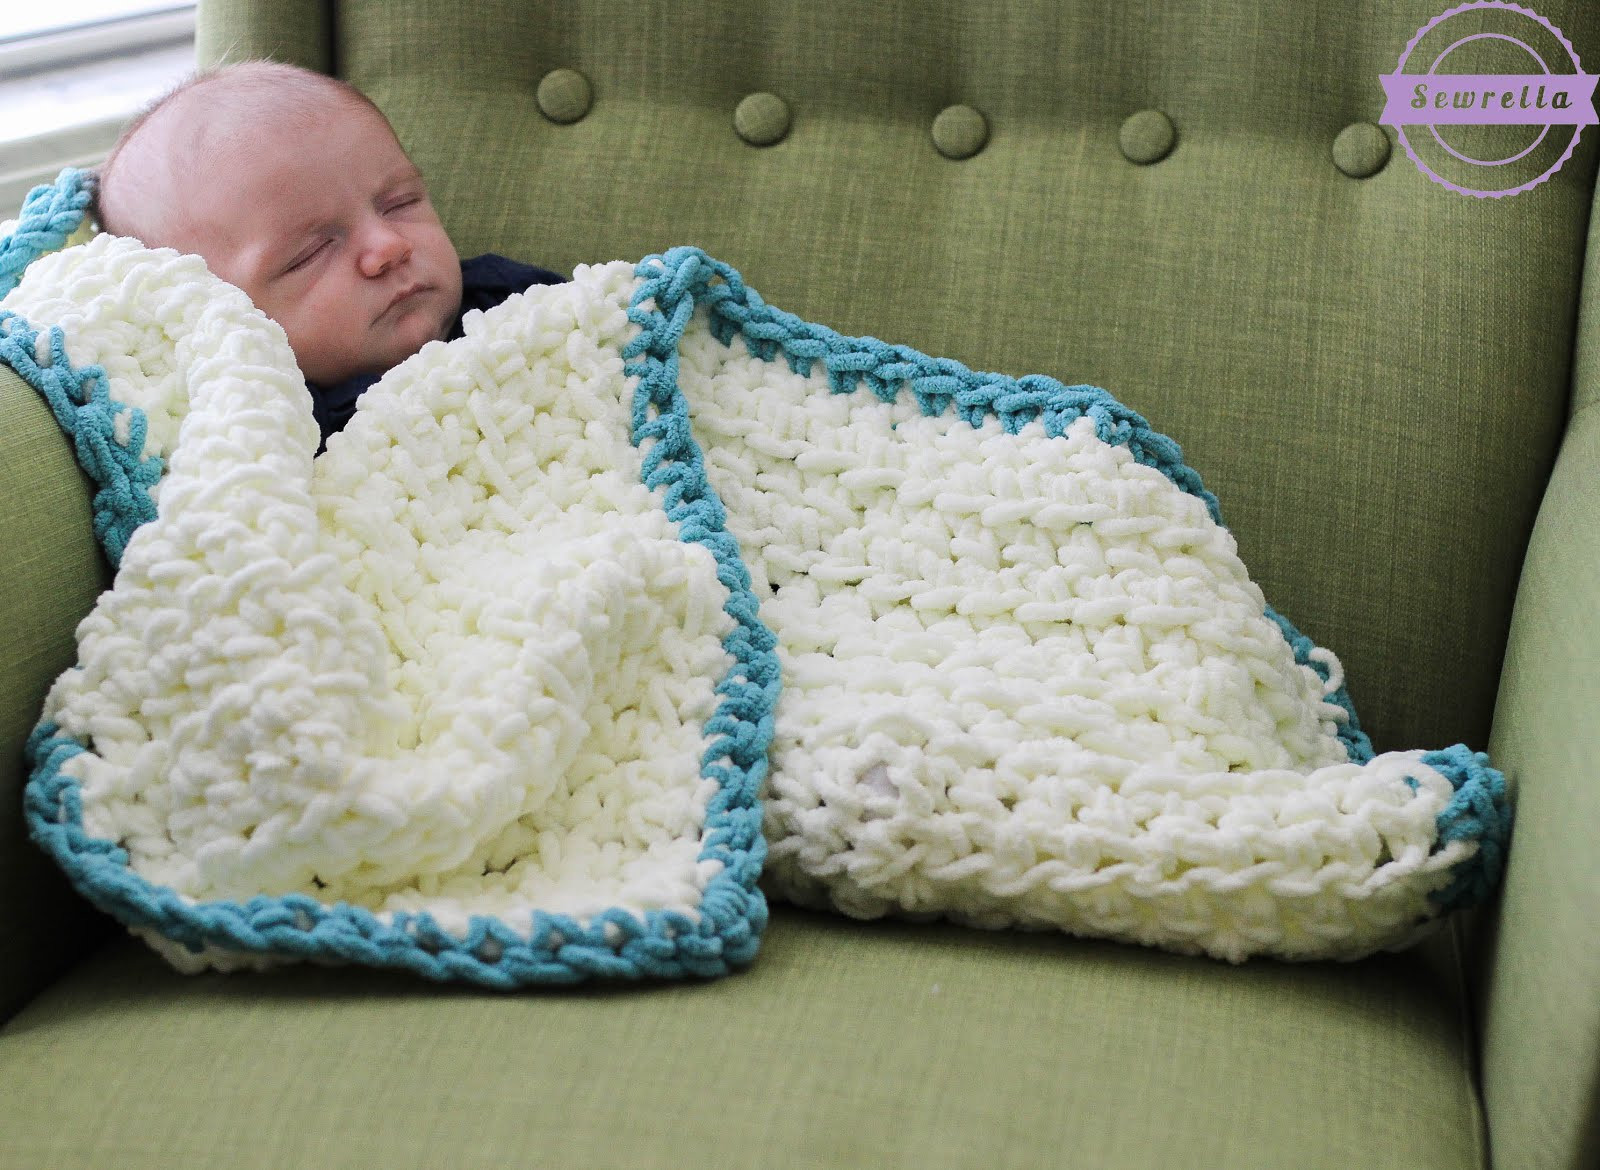 Elegant Easy Beginner Baby Blanket Sewrella Easiest Crochet Blanket Of New 50 Images Easiest Crochet Blanket